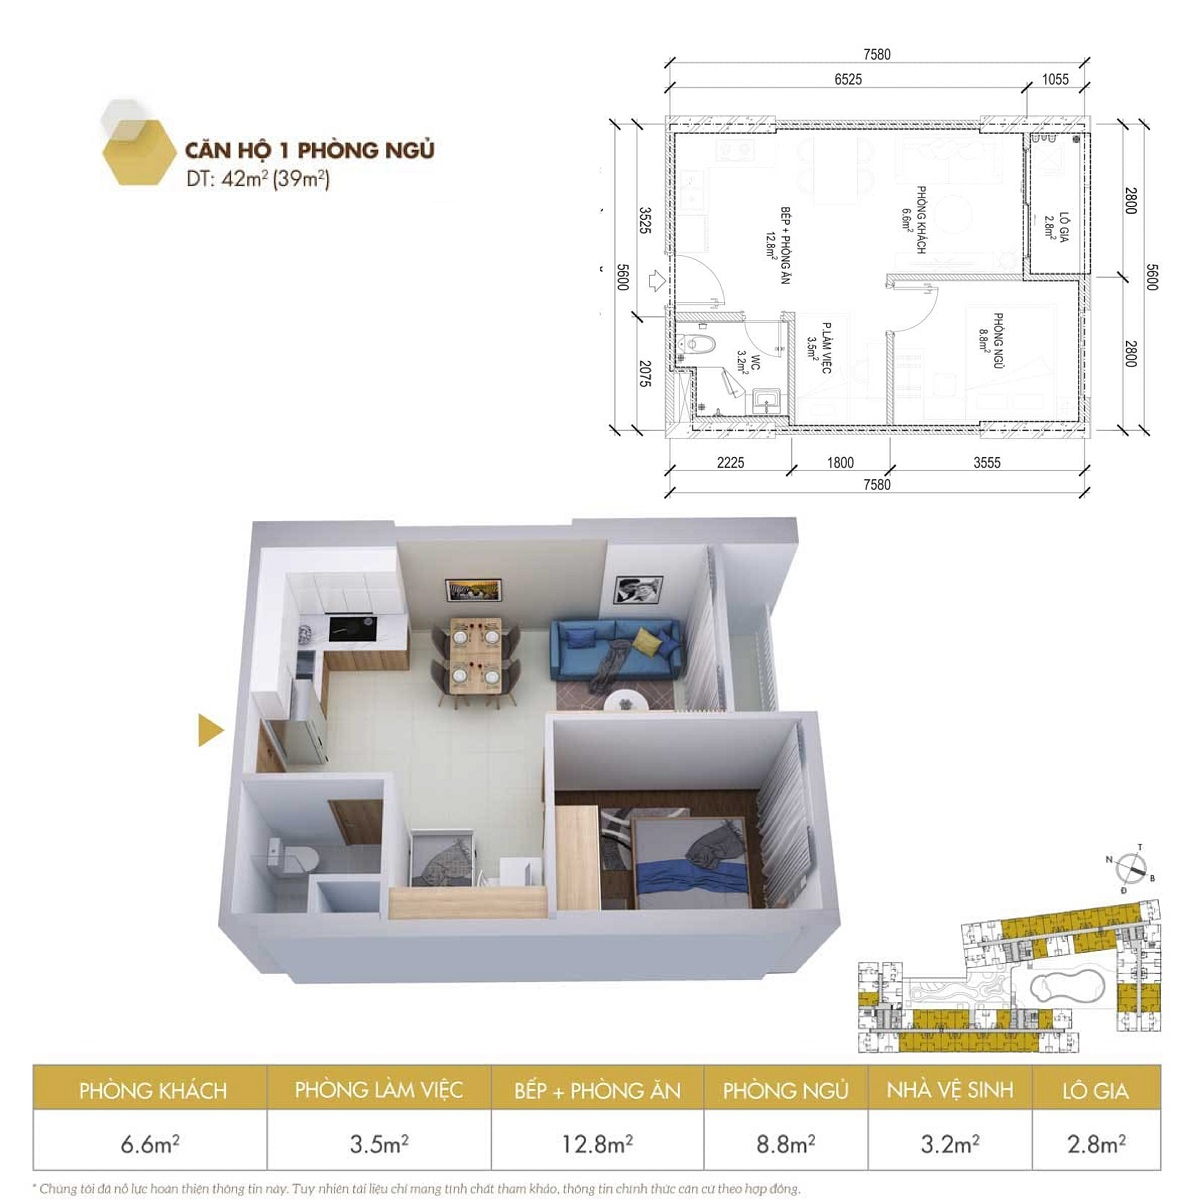 can-ho-1pn-legacy-central 42m2